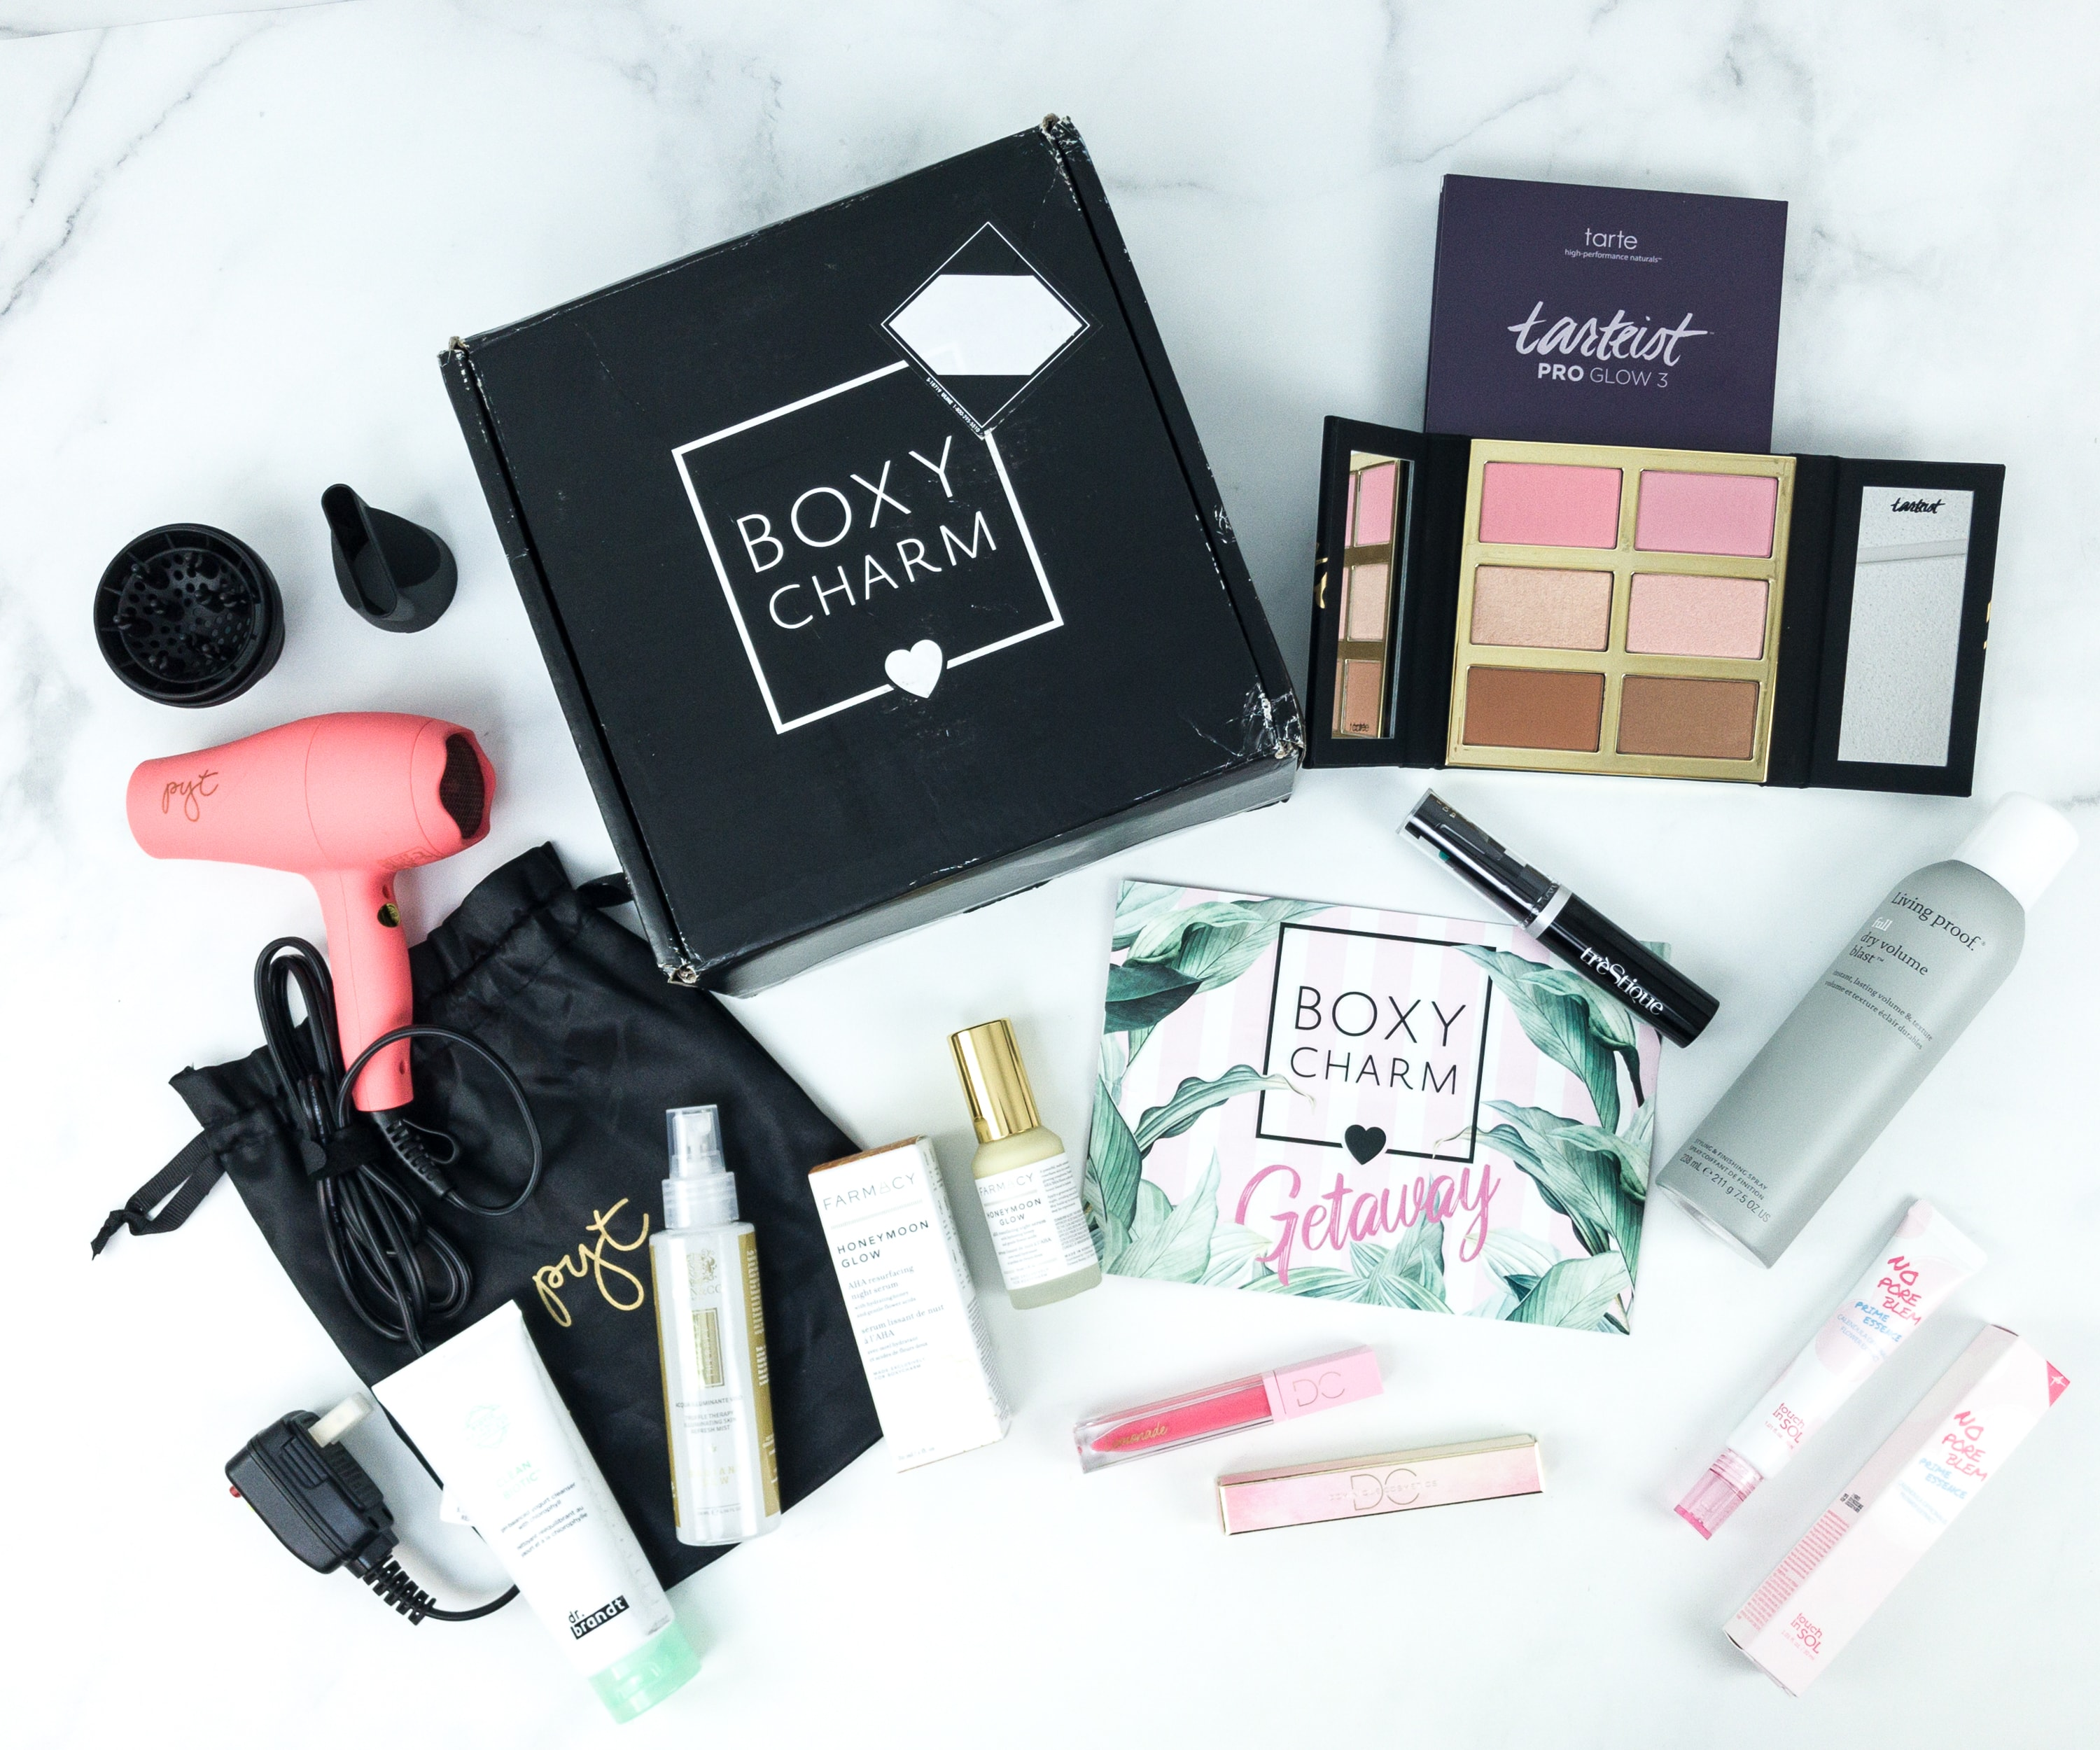 BOXYCHARM June 2019 BoxyLuxe Review